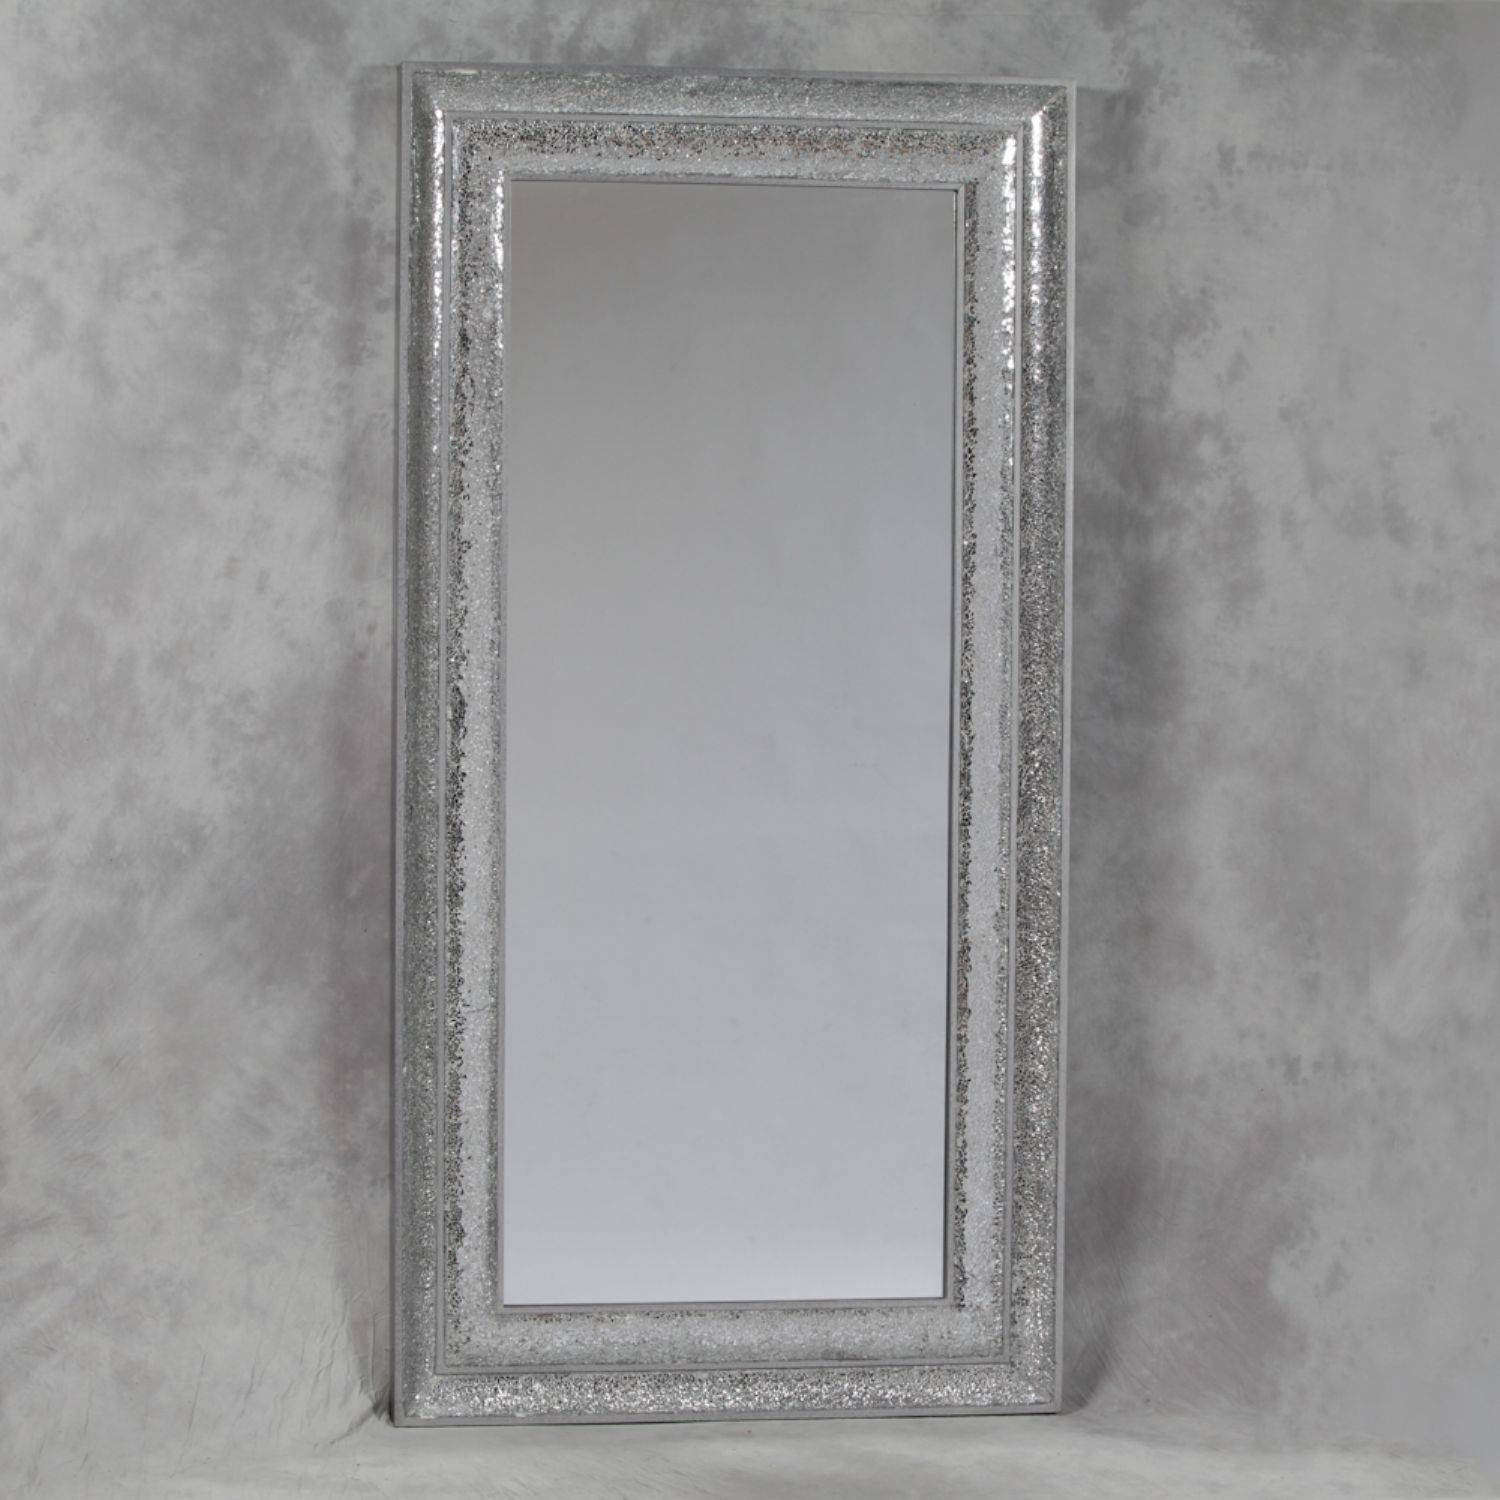 Large Rectangular Silver Crushed Glass Mosaic Mirror intended for Silver Long Mirrors (Image 12 of 15)